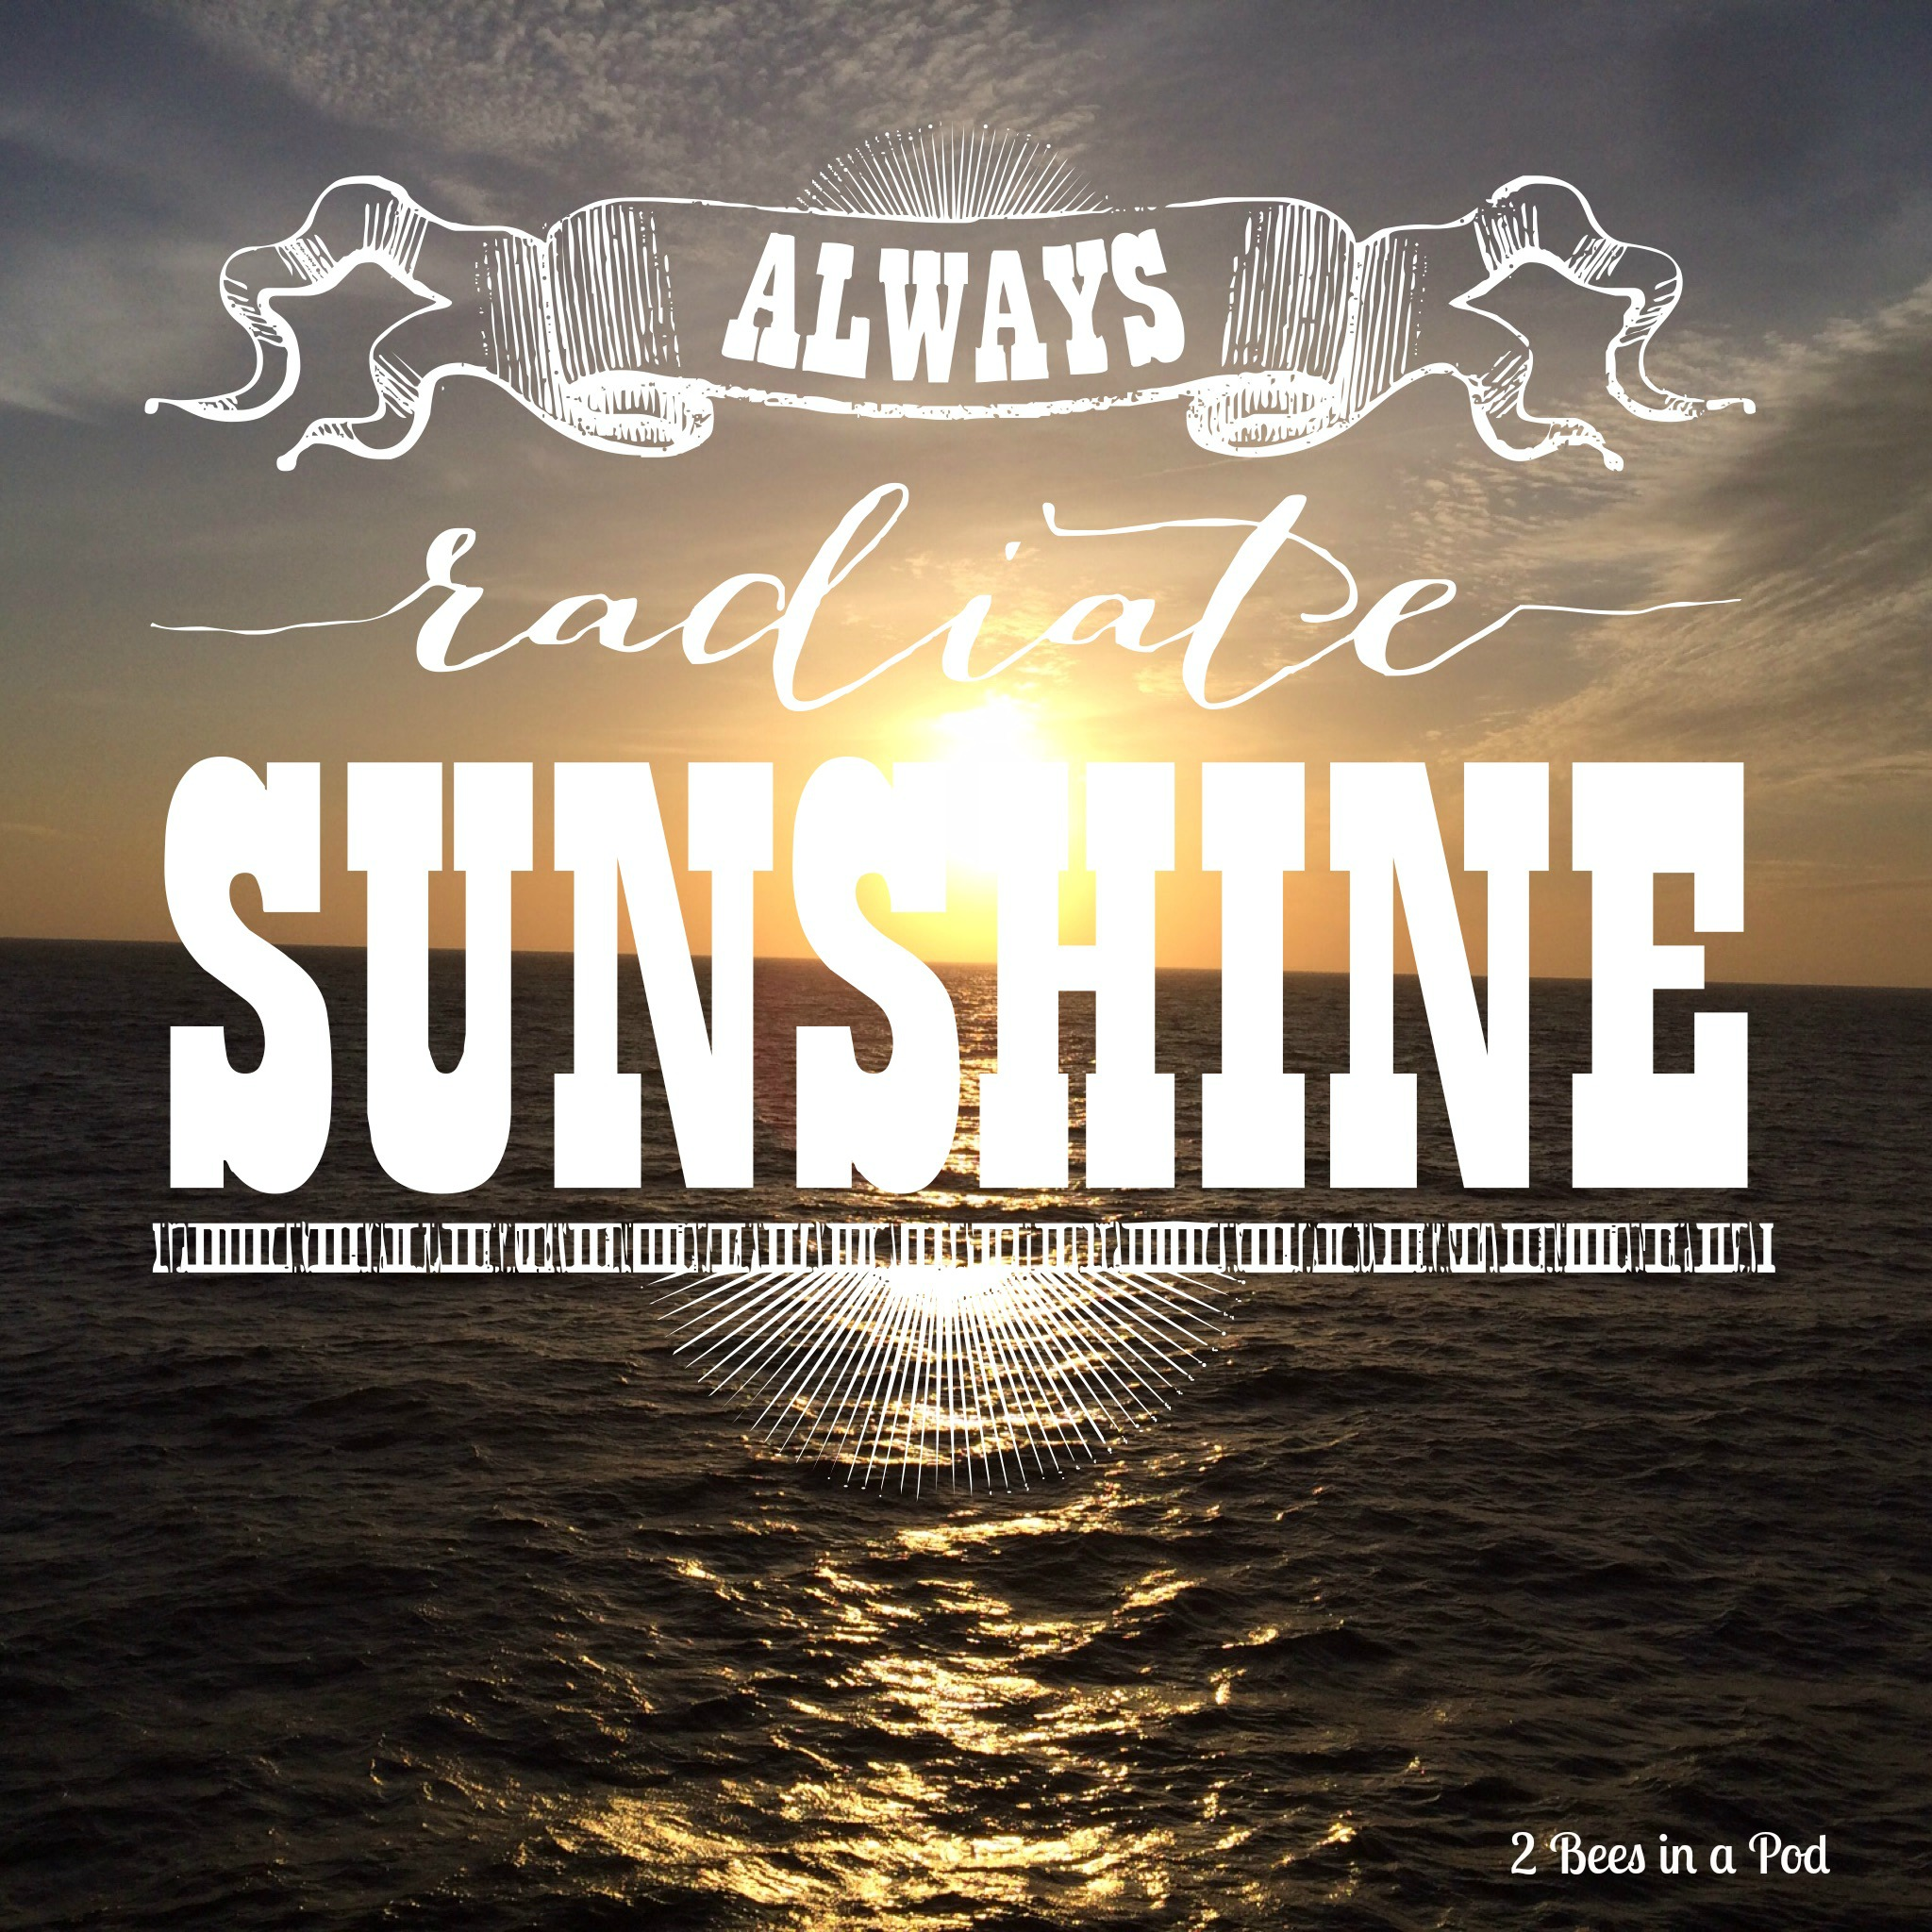 Favorite Quote - Always Radiate Sunshine